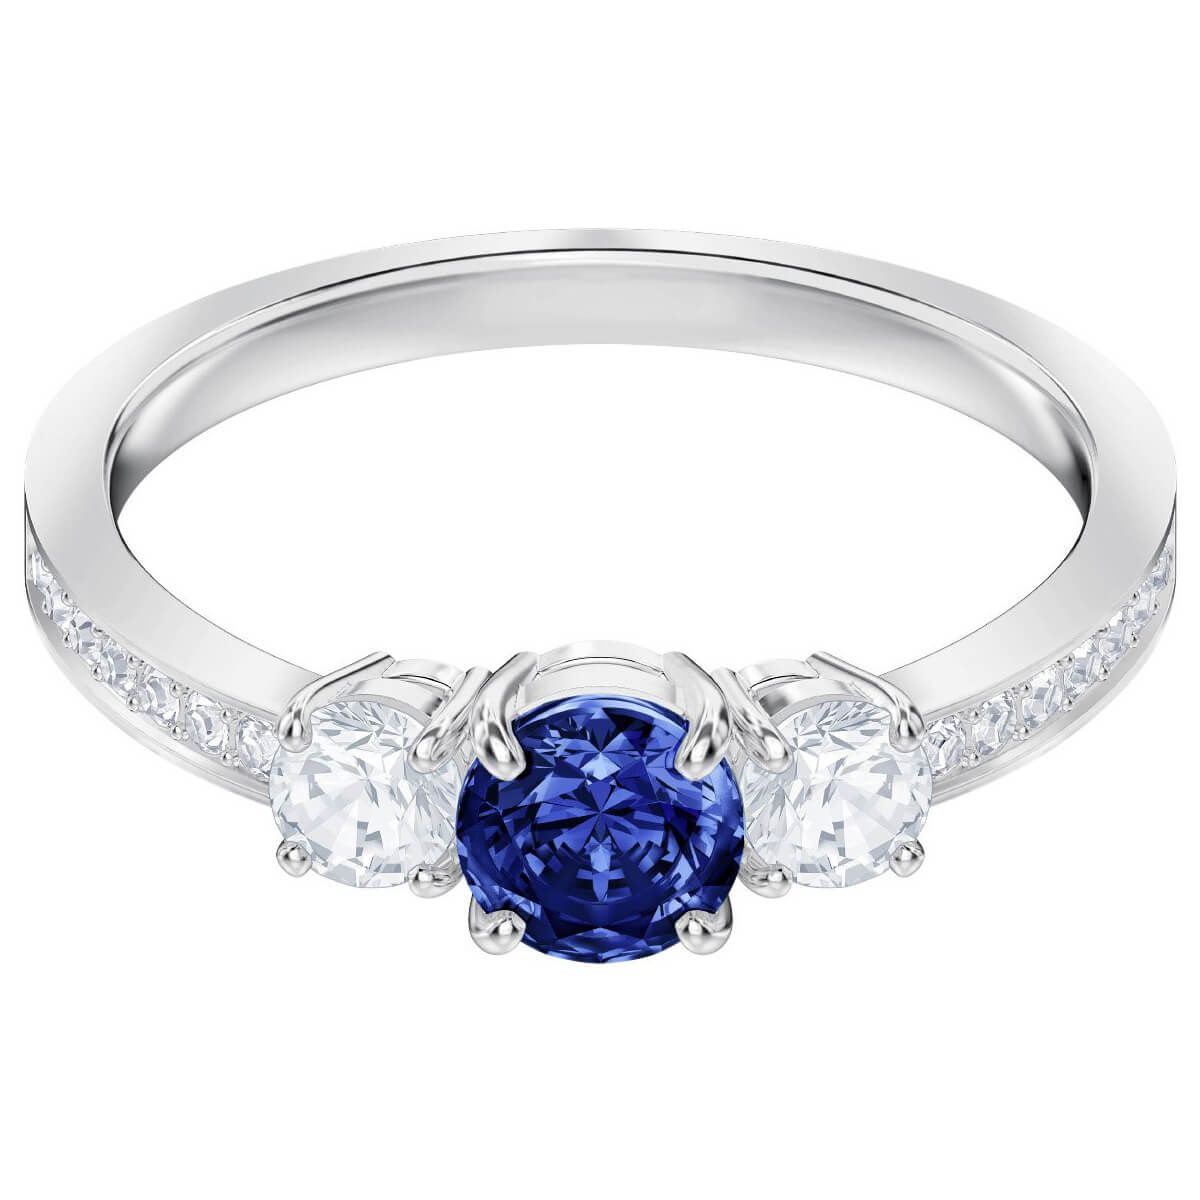 Attract Trilogy Round Ring 97d1531594c